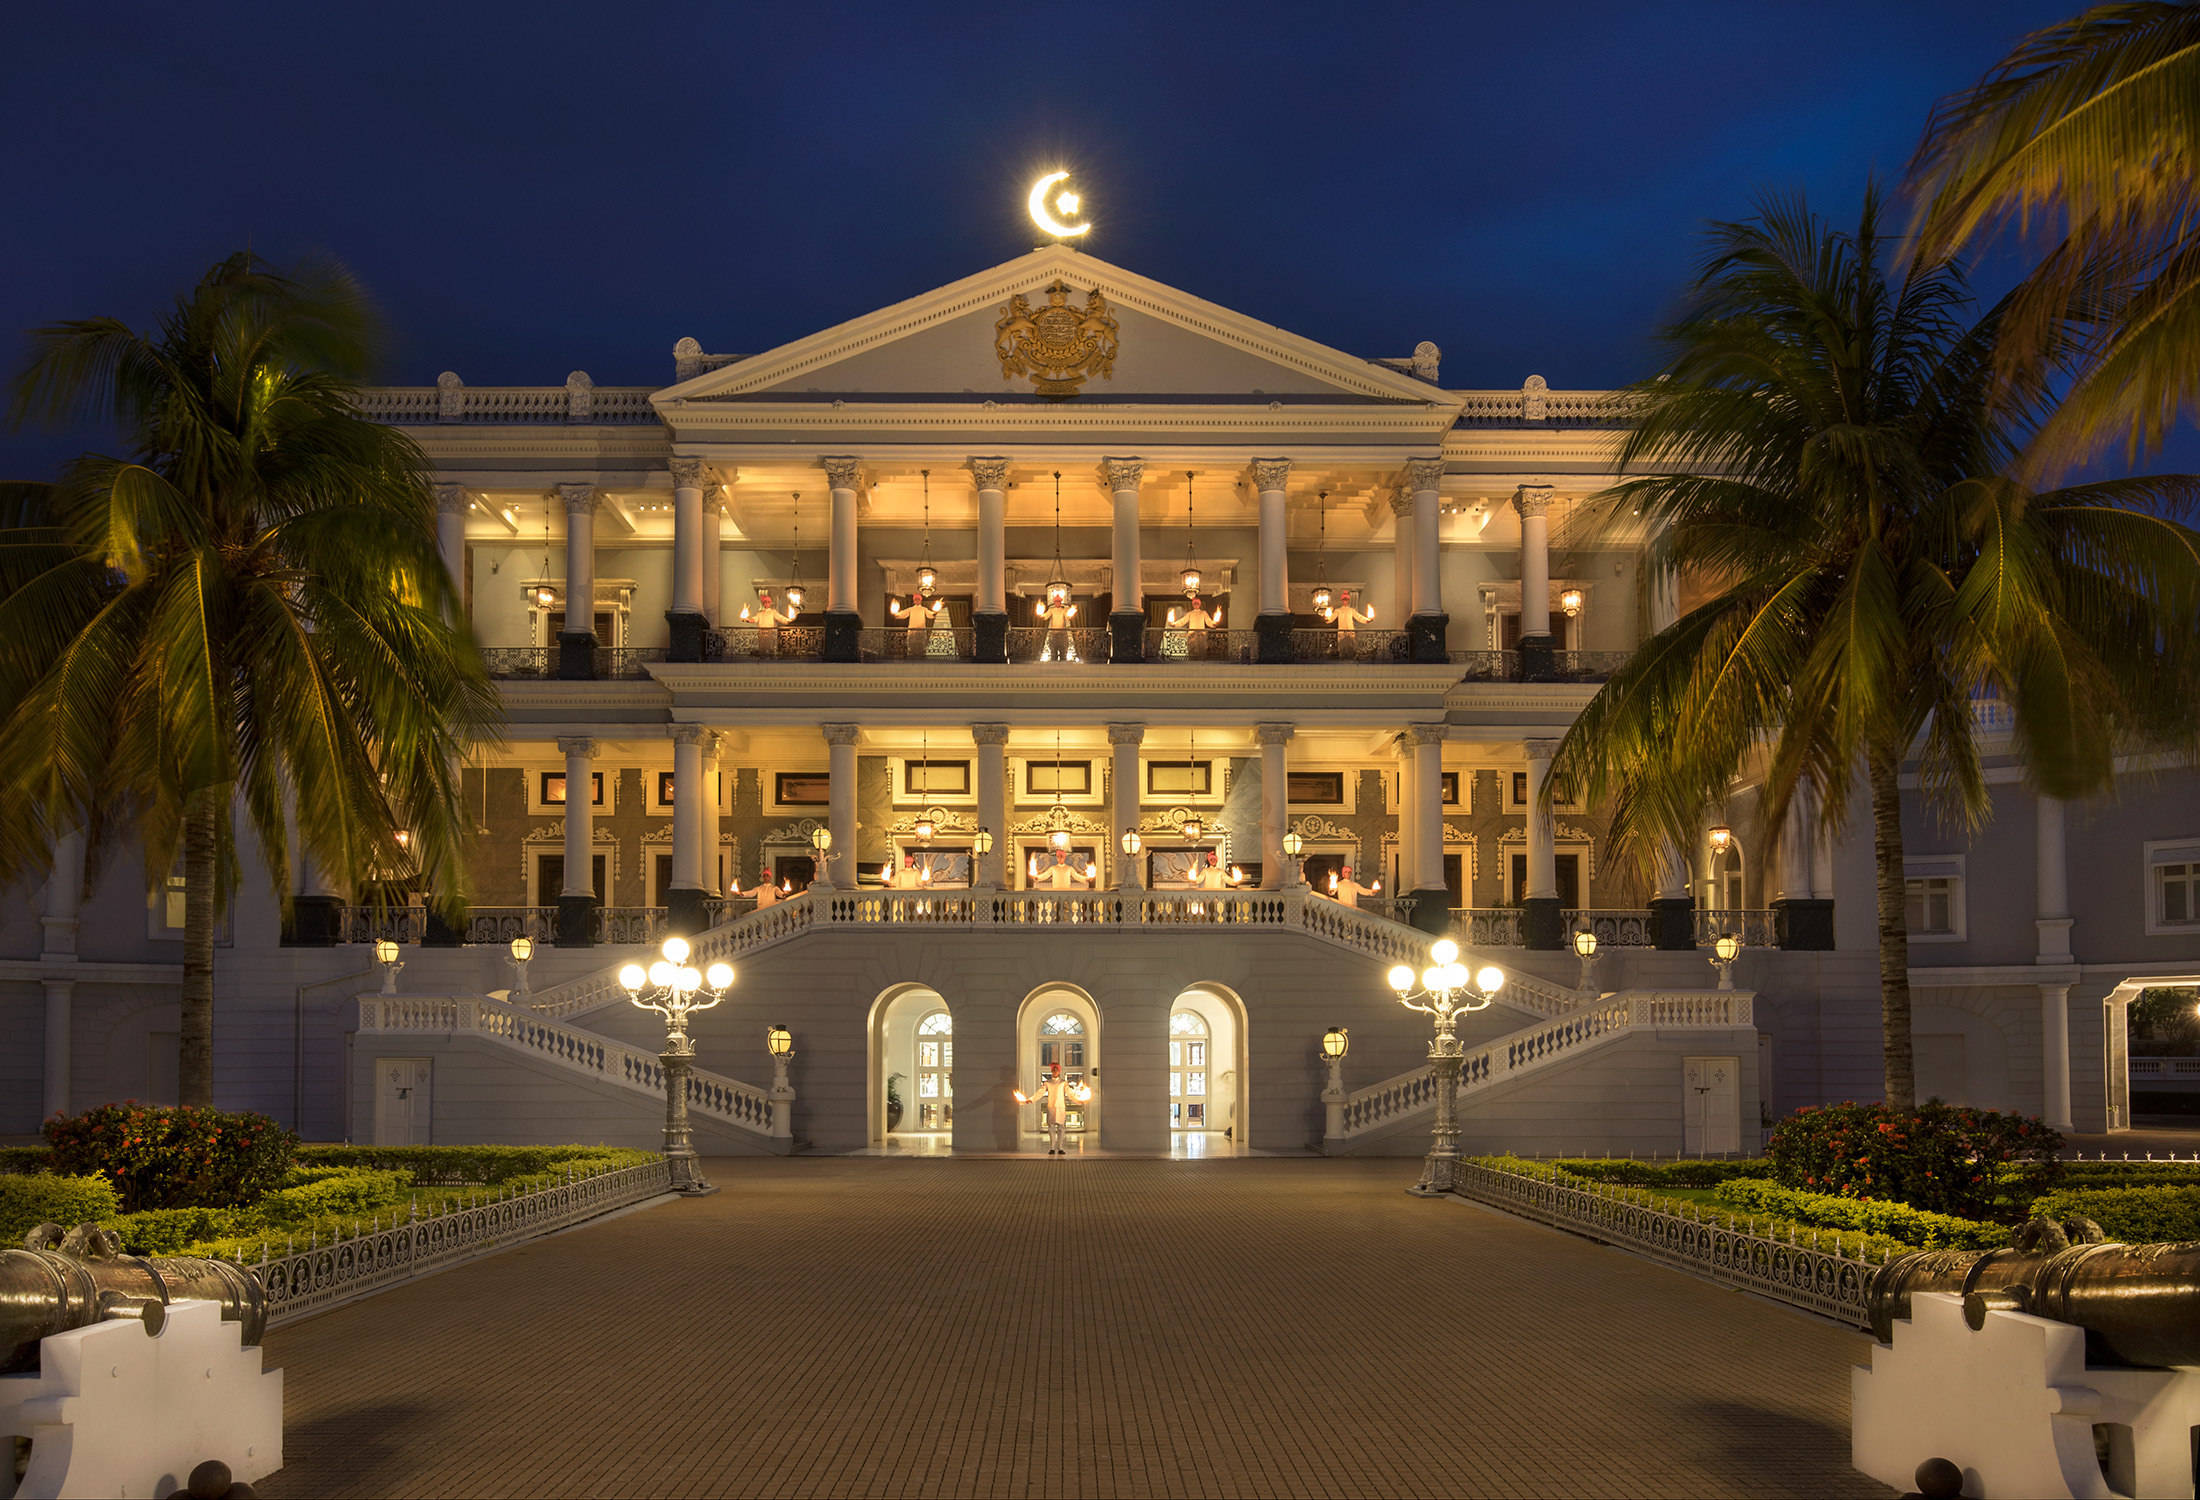 Lifestyle shoot at Taj Falaknuma Palace, Hyderabad, India, by Peter Jackson